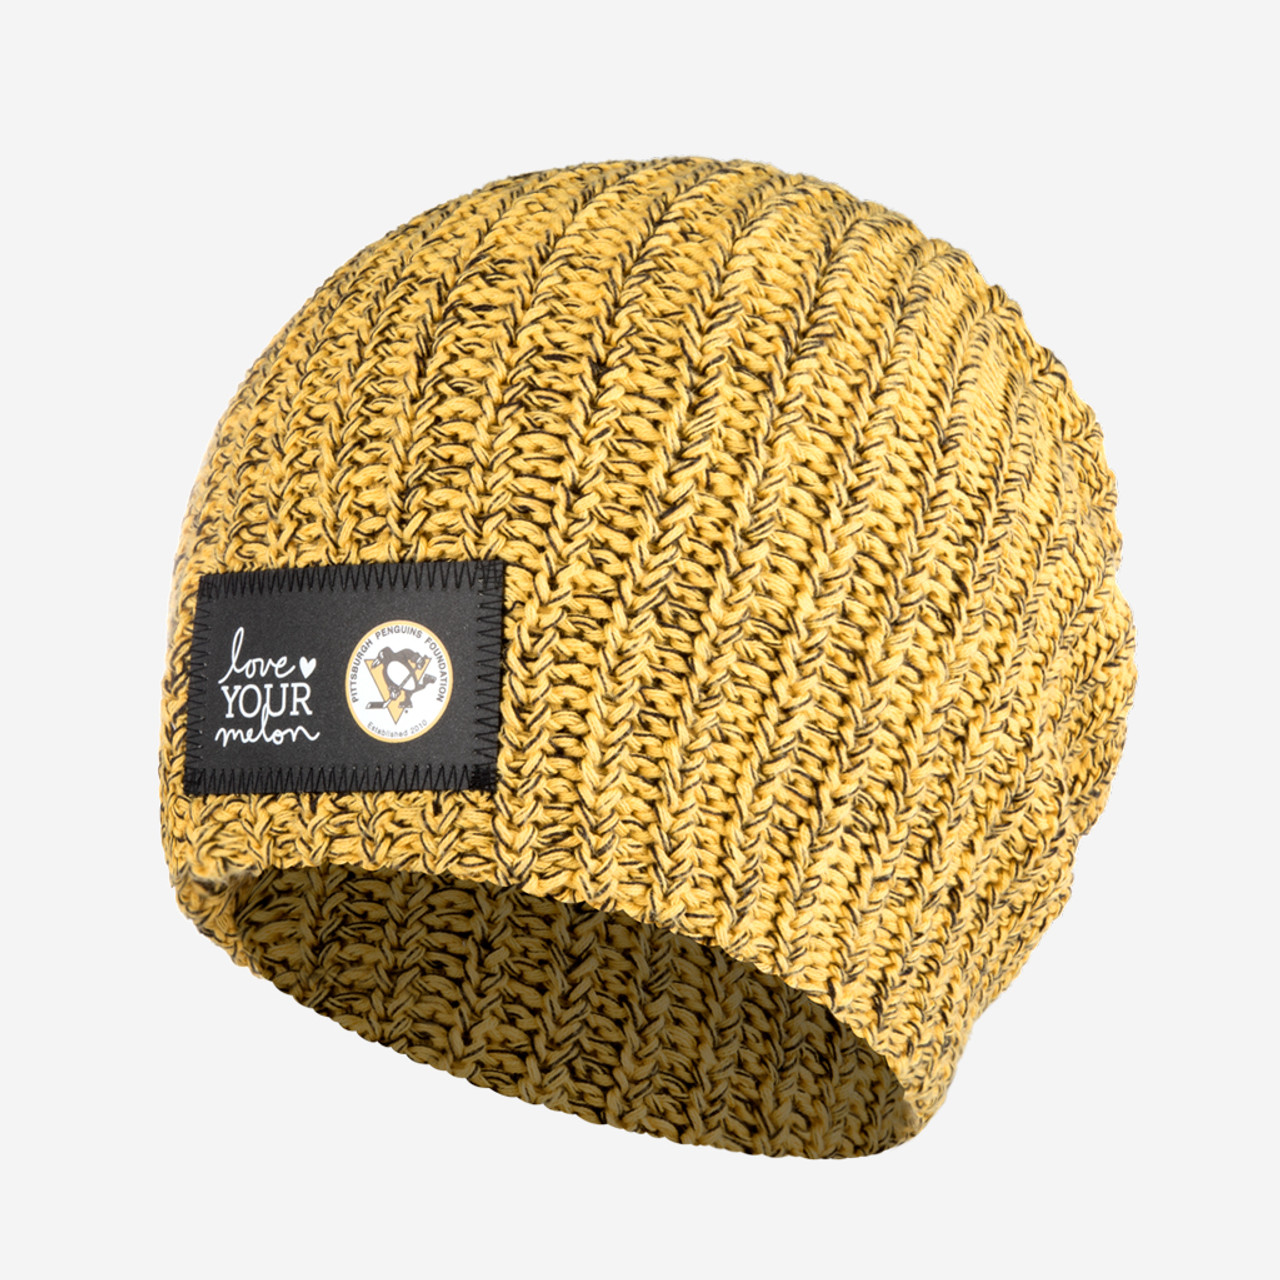 623ee33c0fc8f ... Engraving Preview  (Custom Message). Pittsburgh Penguins Love Your Melon  Beanie